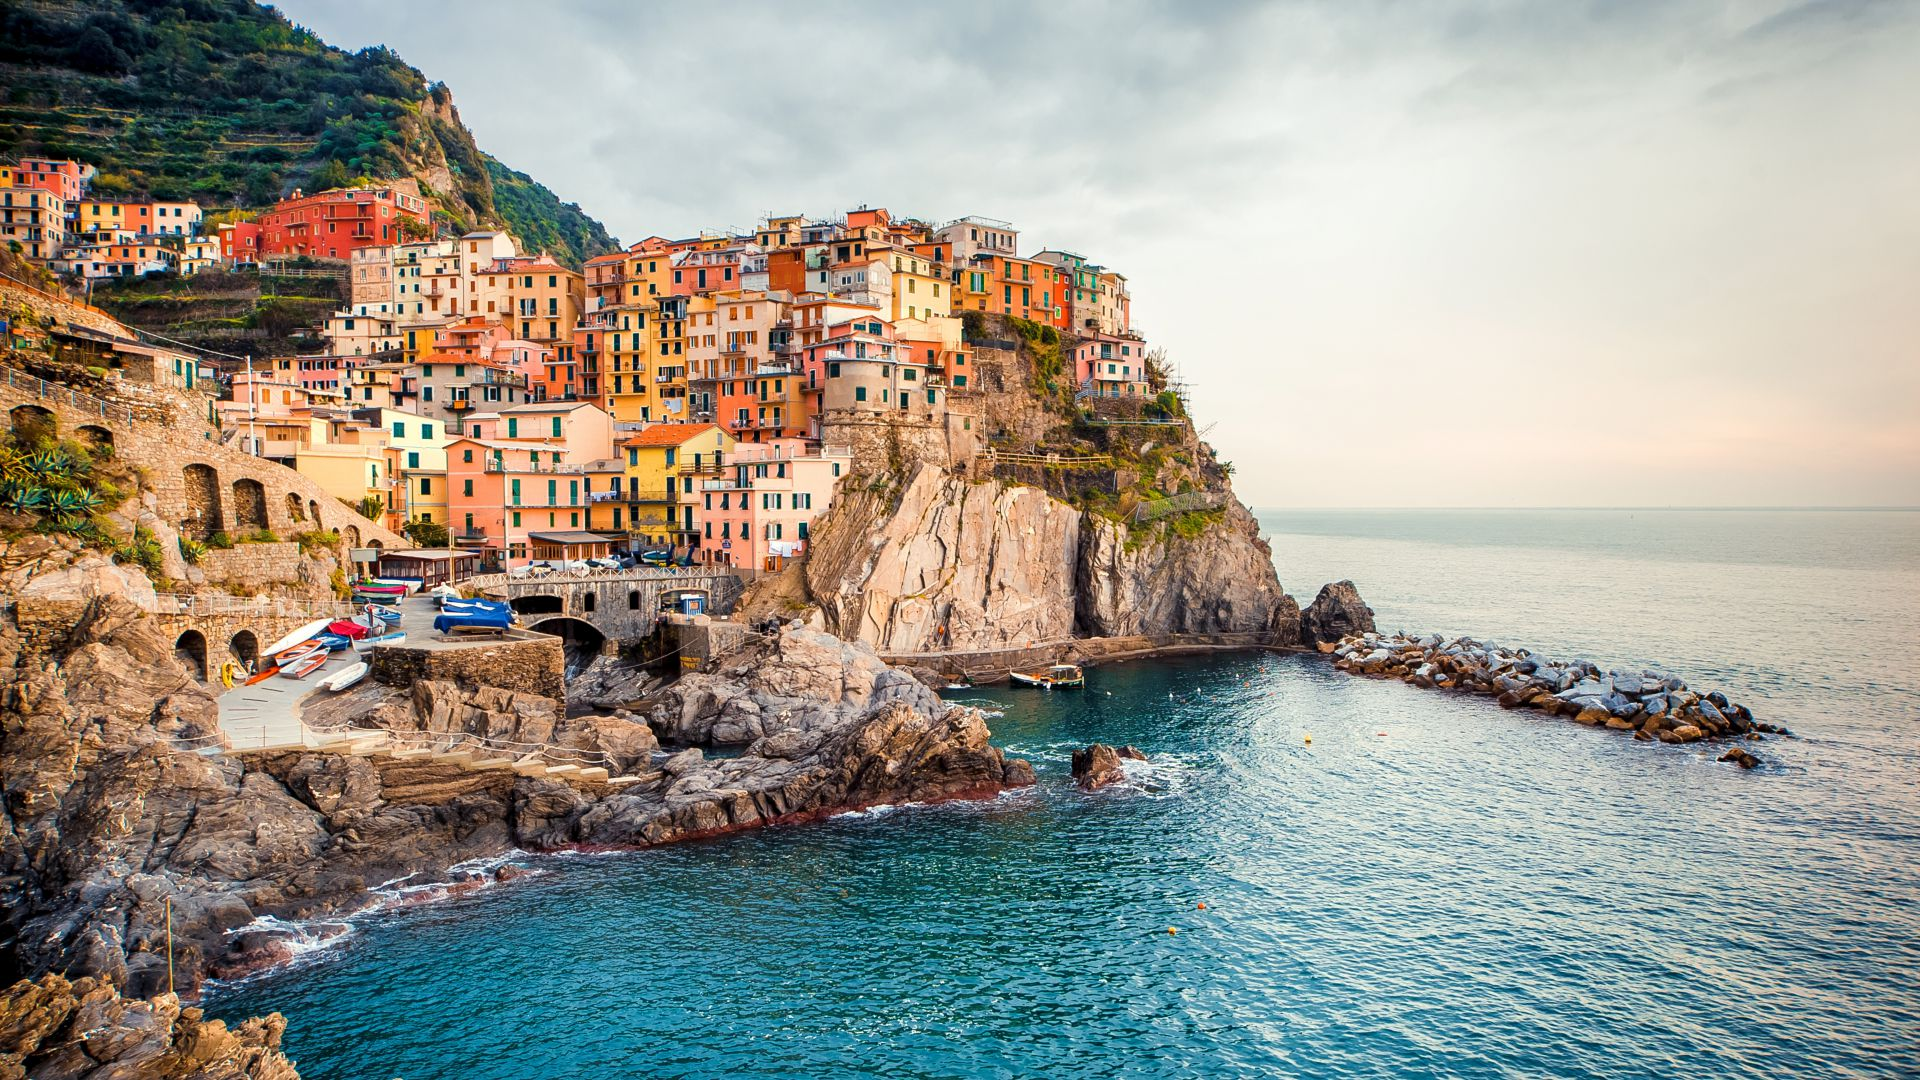 Manarola, Italy, Tourism, Travel (horizontal)